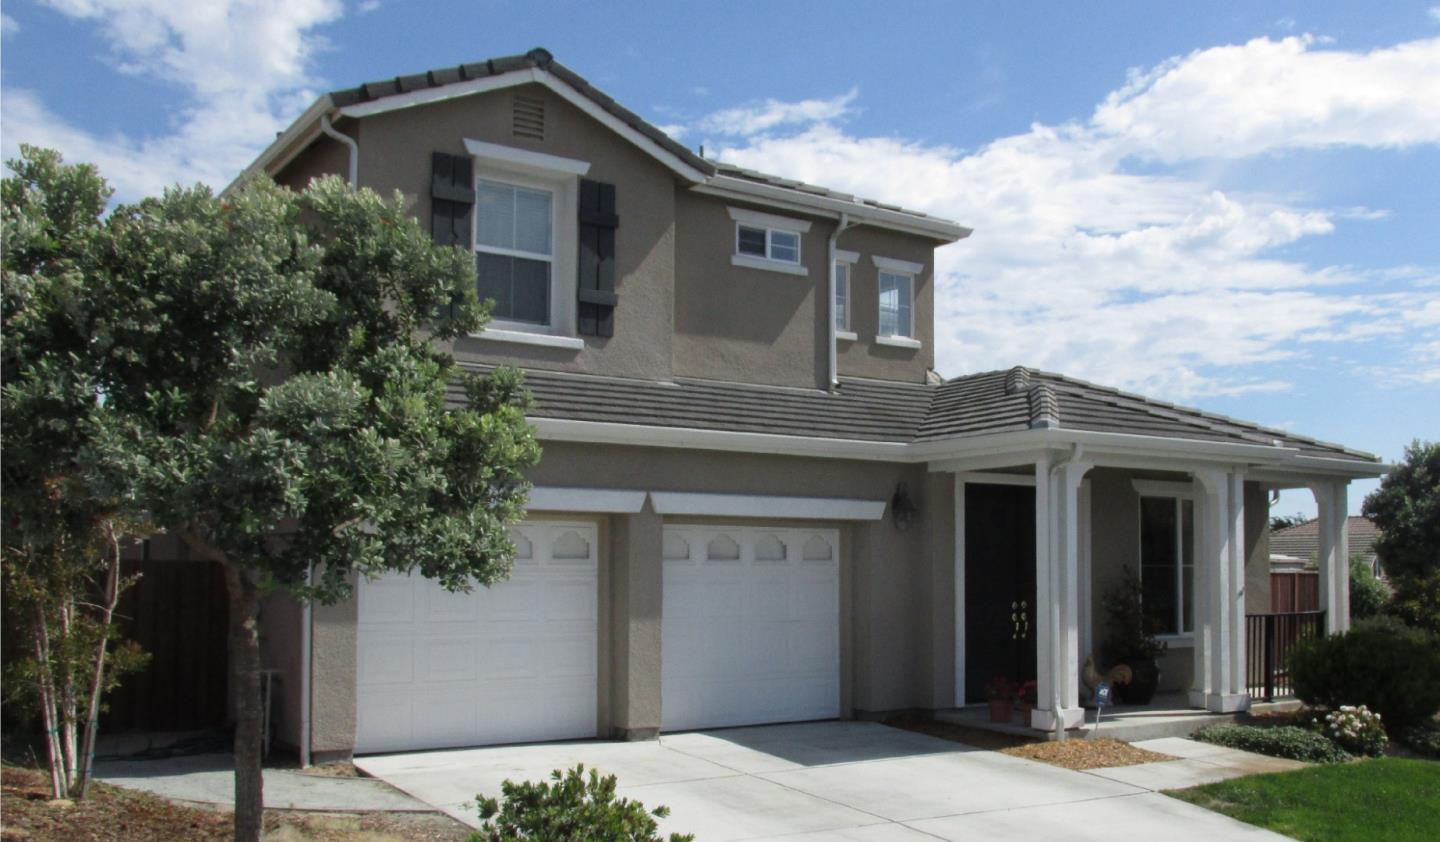 Photo of 4725 SEA RIDGE CT, SEASIDE, CA 93955